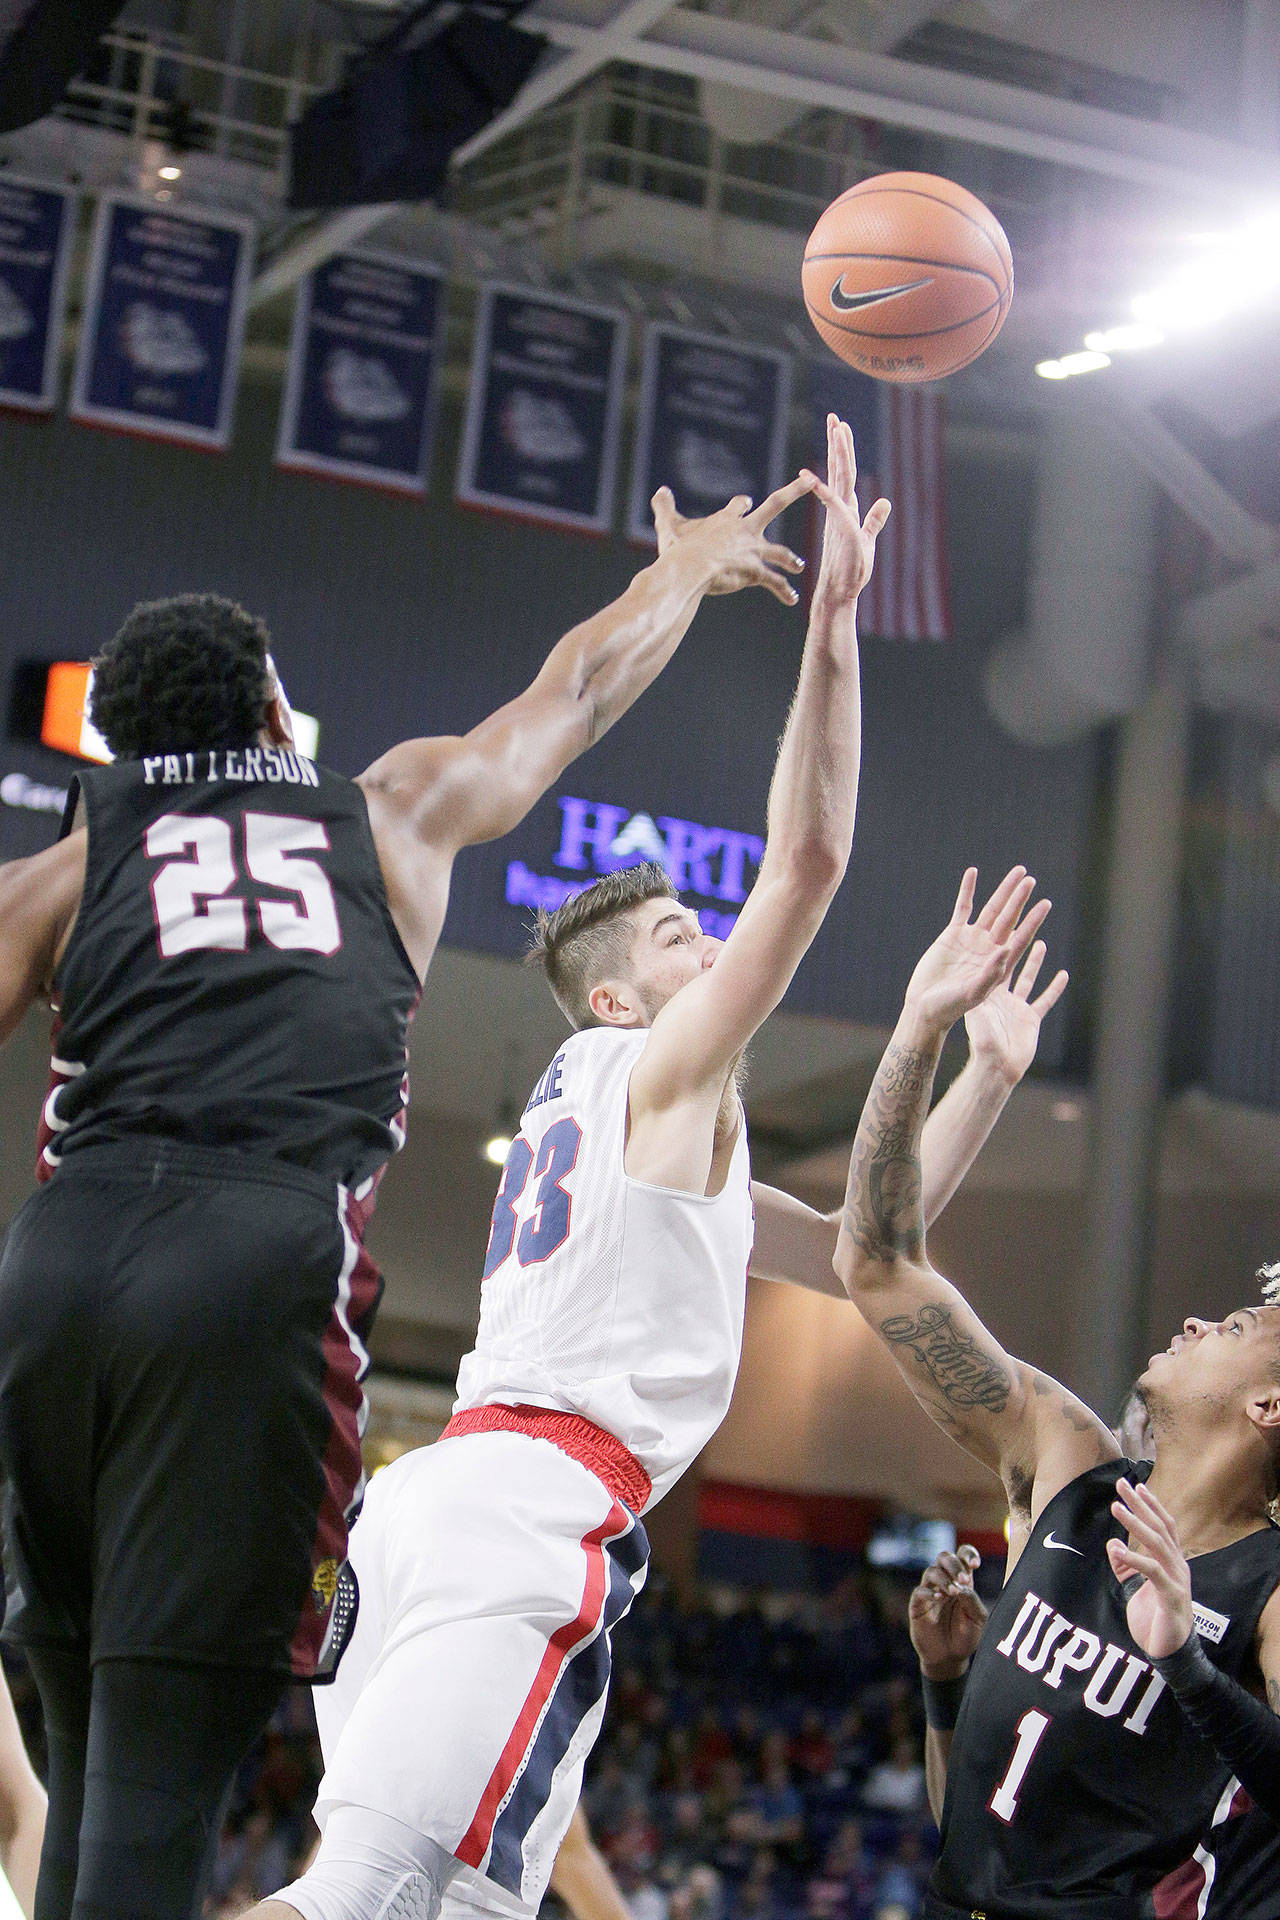 Gonzaga's Killian Tillie (33) shoots between IUPUI's Ron Patterson (25) and T.J. Henderson (1) during the first half of the No. 12 Bulldogs' 101-71 win Monday in Spokane. (AP Photo/Young Kwak)